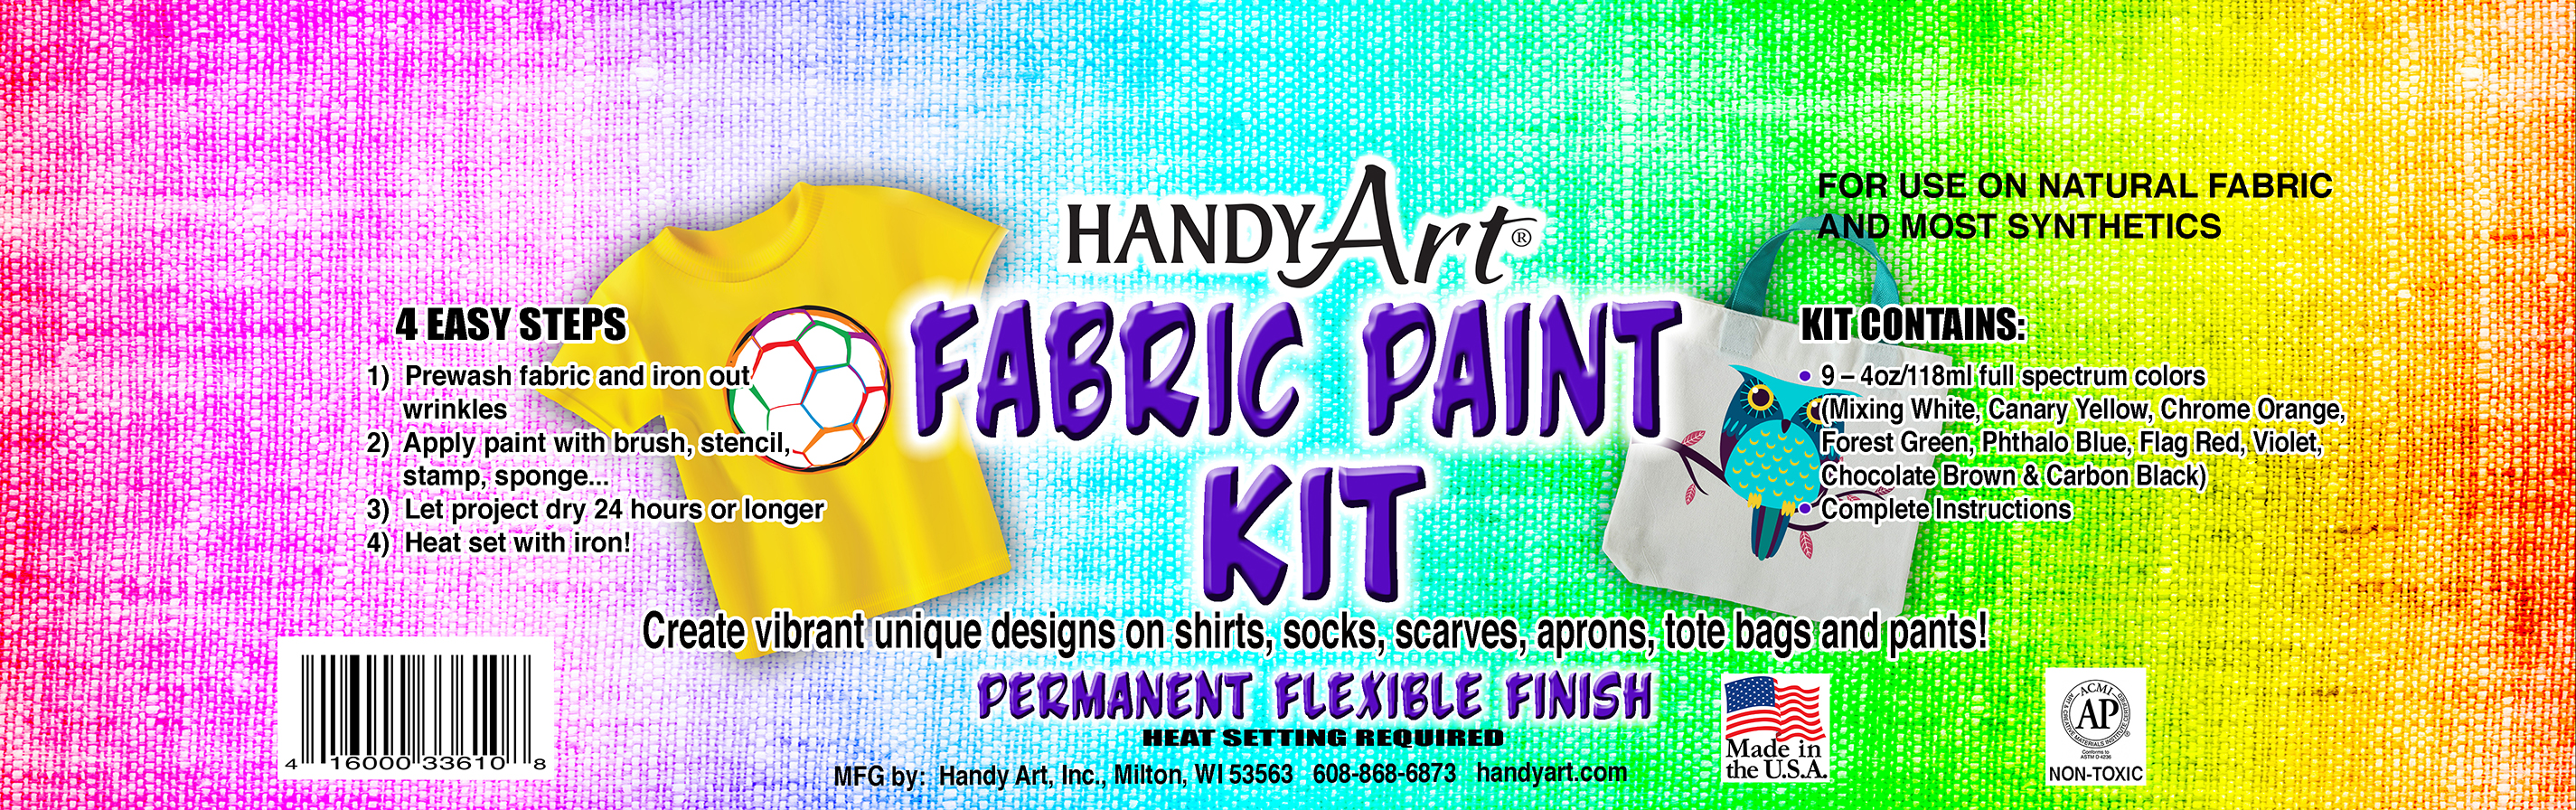 Handy Art - Fabric Paint Kit